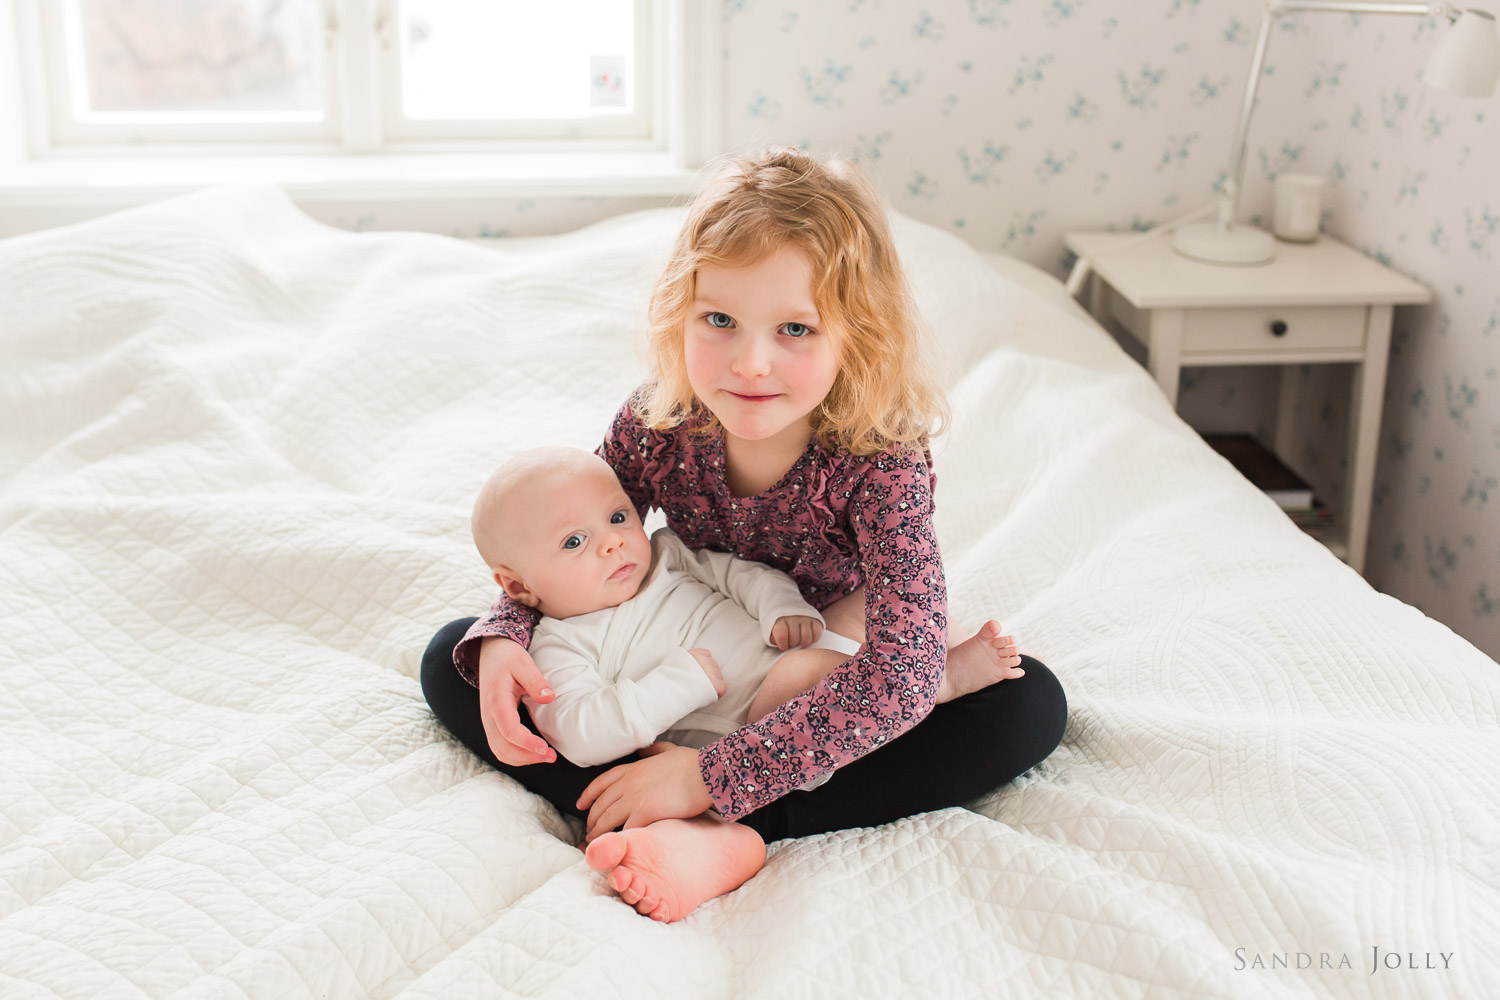 lifestyle-session-at-home-with-sister-and-baby-brother-by-child-photographer-sandra-jolly.jpg